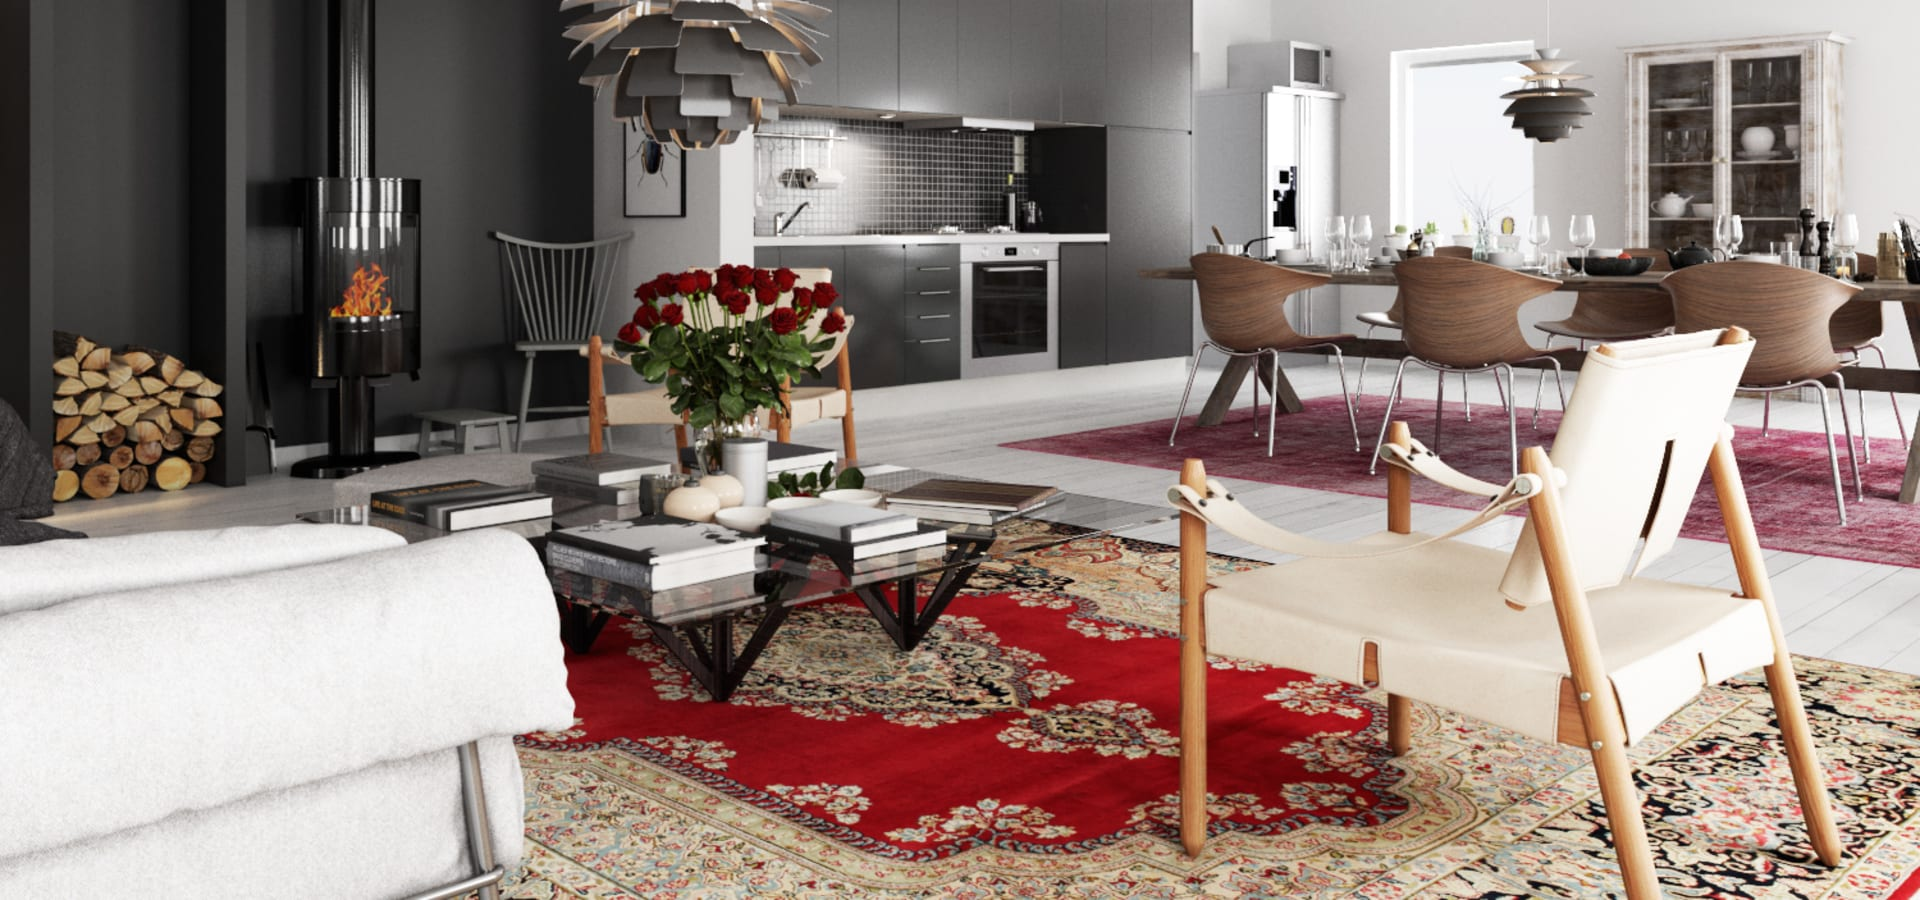 carpetvista spain muebles y accesorios en malm homify. Black Bedroom Furniture Sets. Home Design Ideas